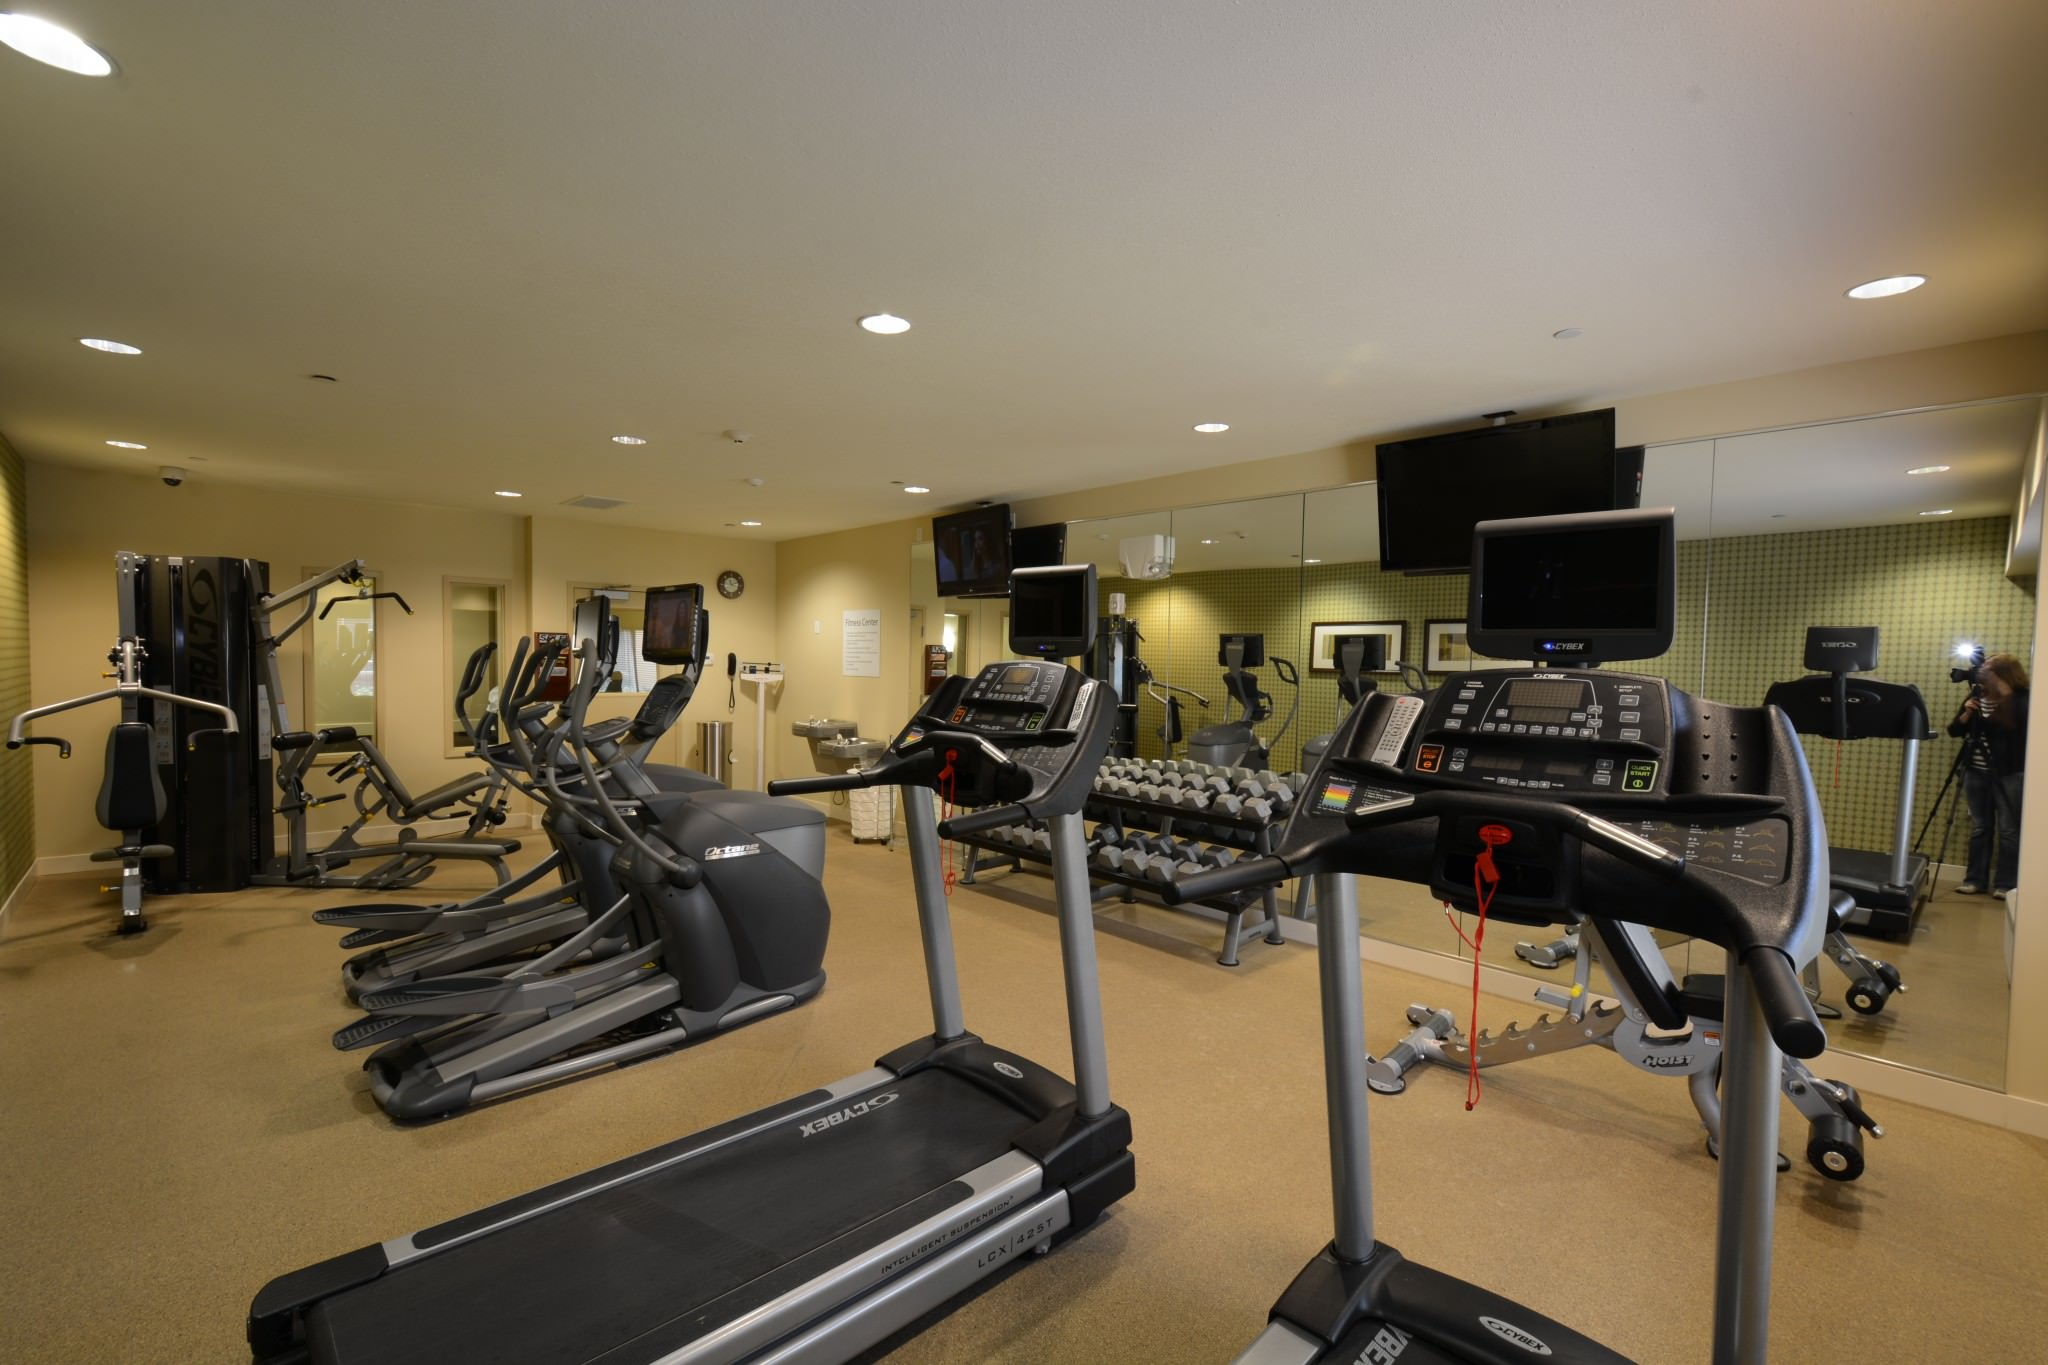 Holiday Inn exercise room